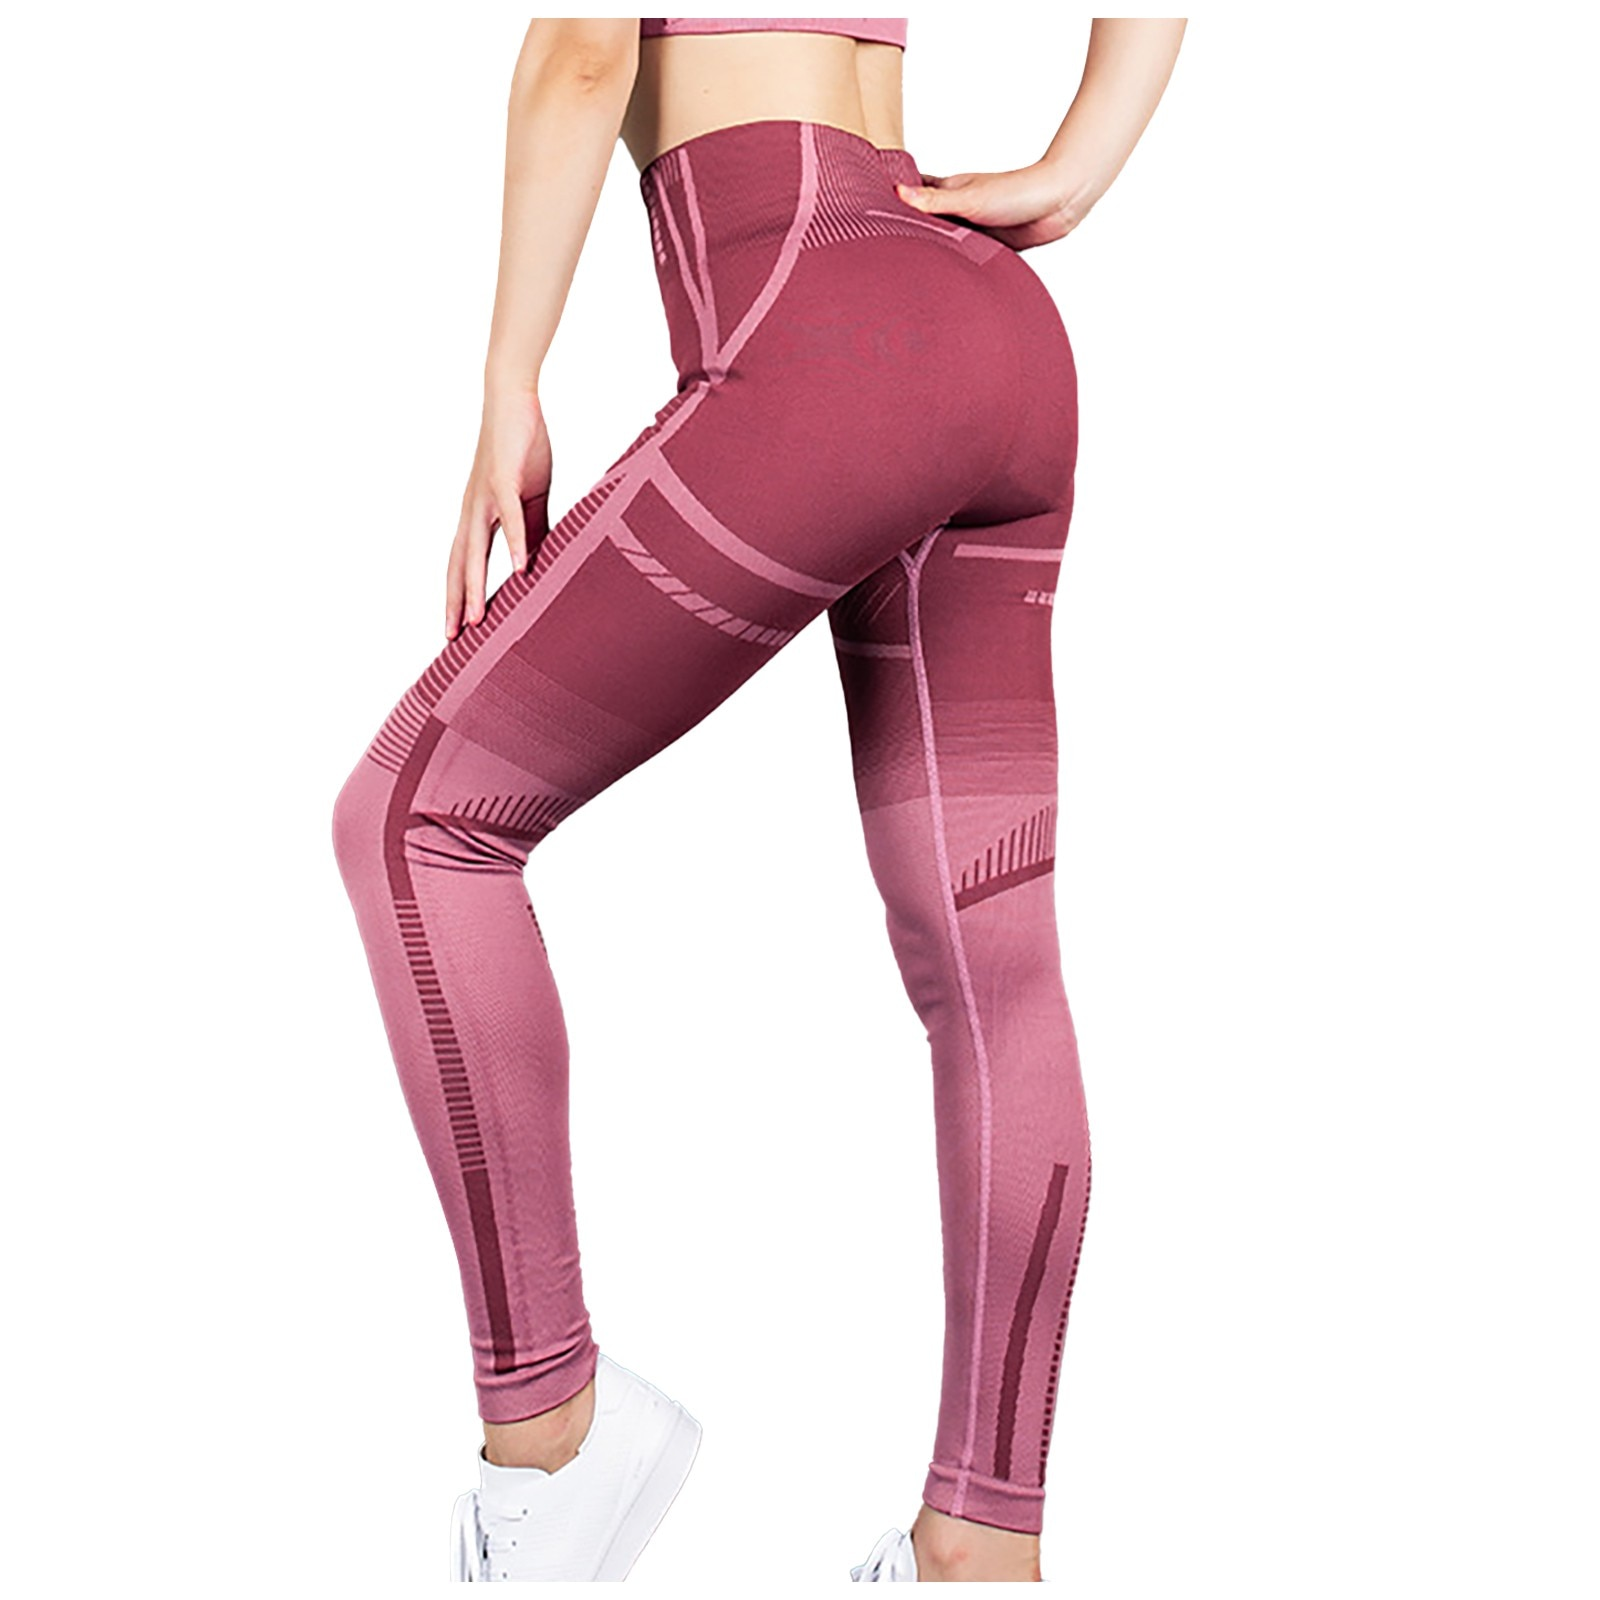 Yoga Pants Women's Seamless Yoga Pants Gym Running Fitness Sports Buttocks Striped High-stretch 2021 Hot Sale#30